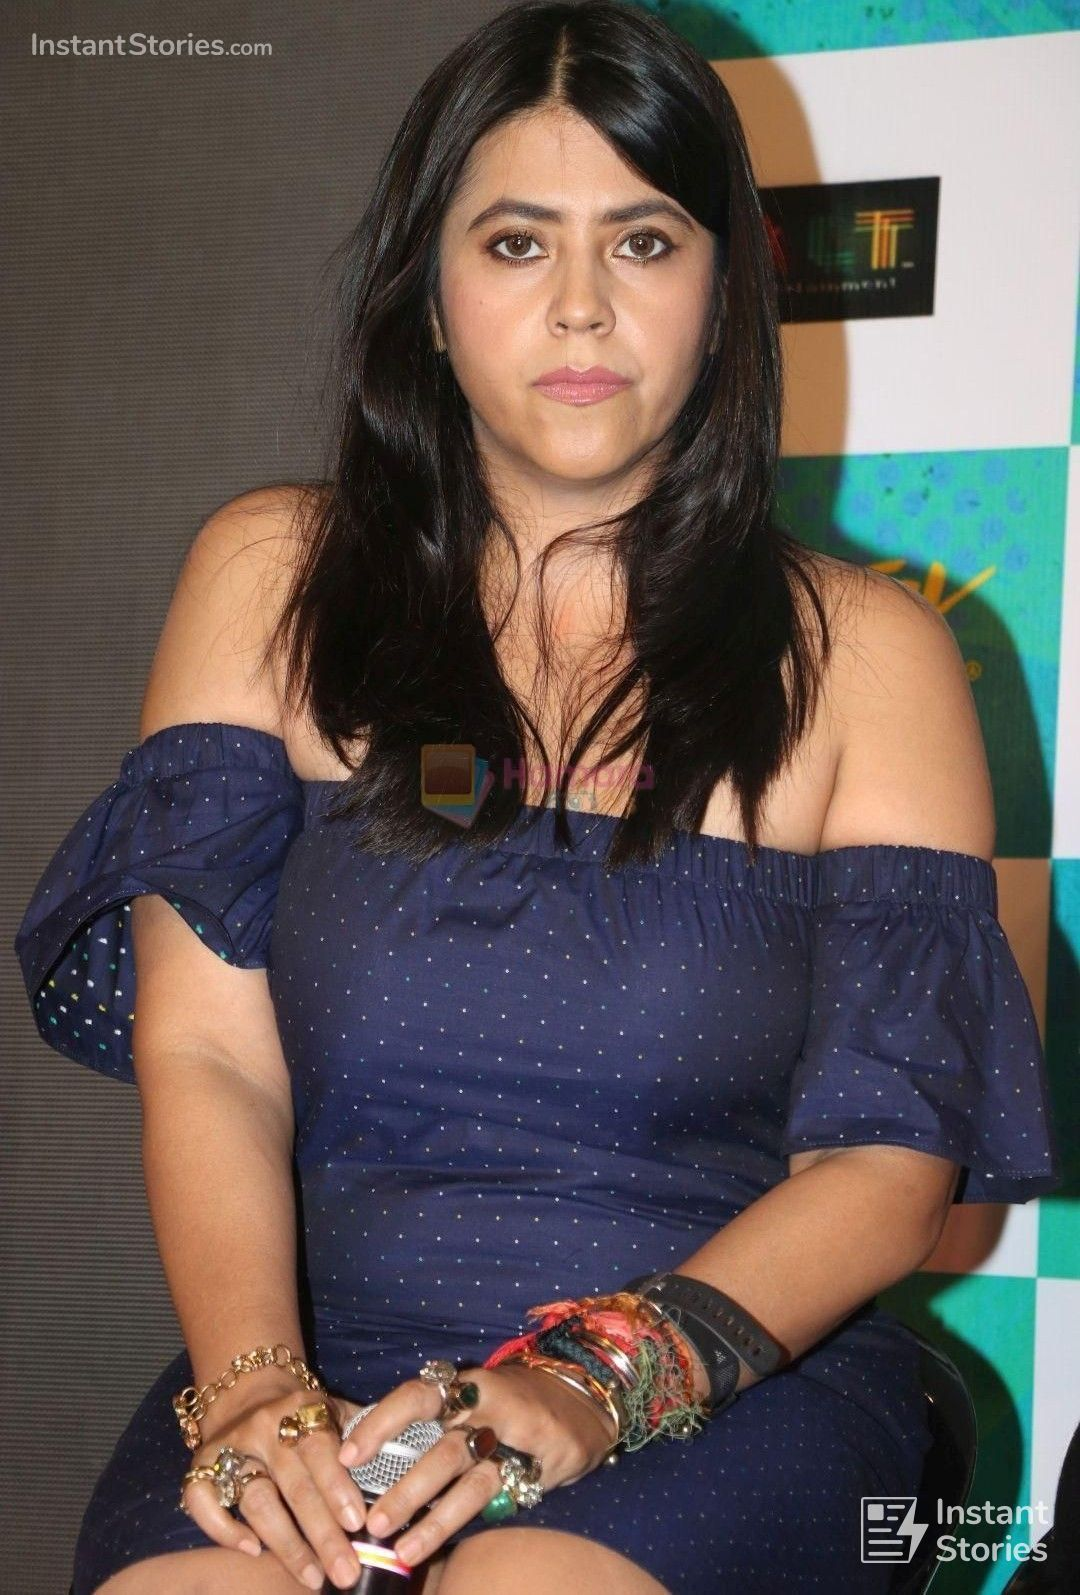 Ekta Kapoor Latest Hot Images Hd 1080p 3133 Ektakapoor Plus Size Fashion Blog Blouse Design Models Bollywood Actress Hot Photos